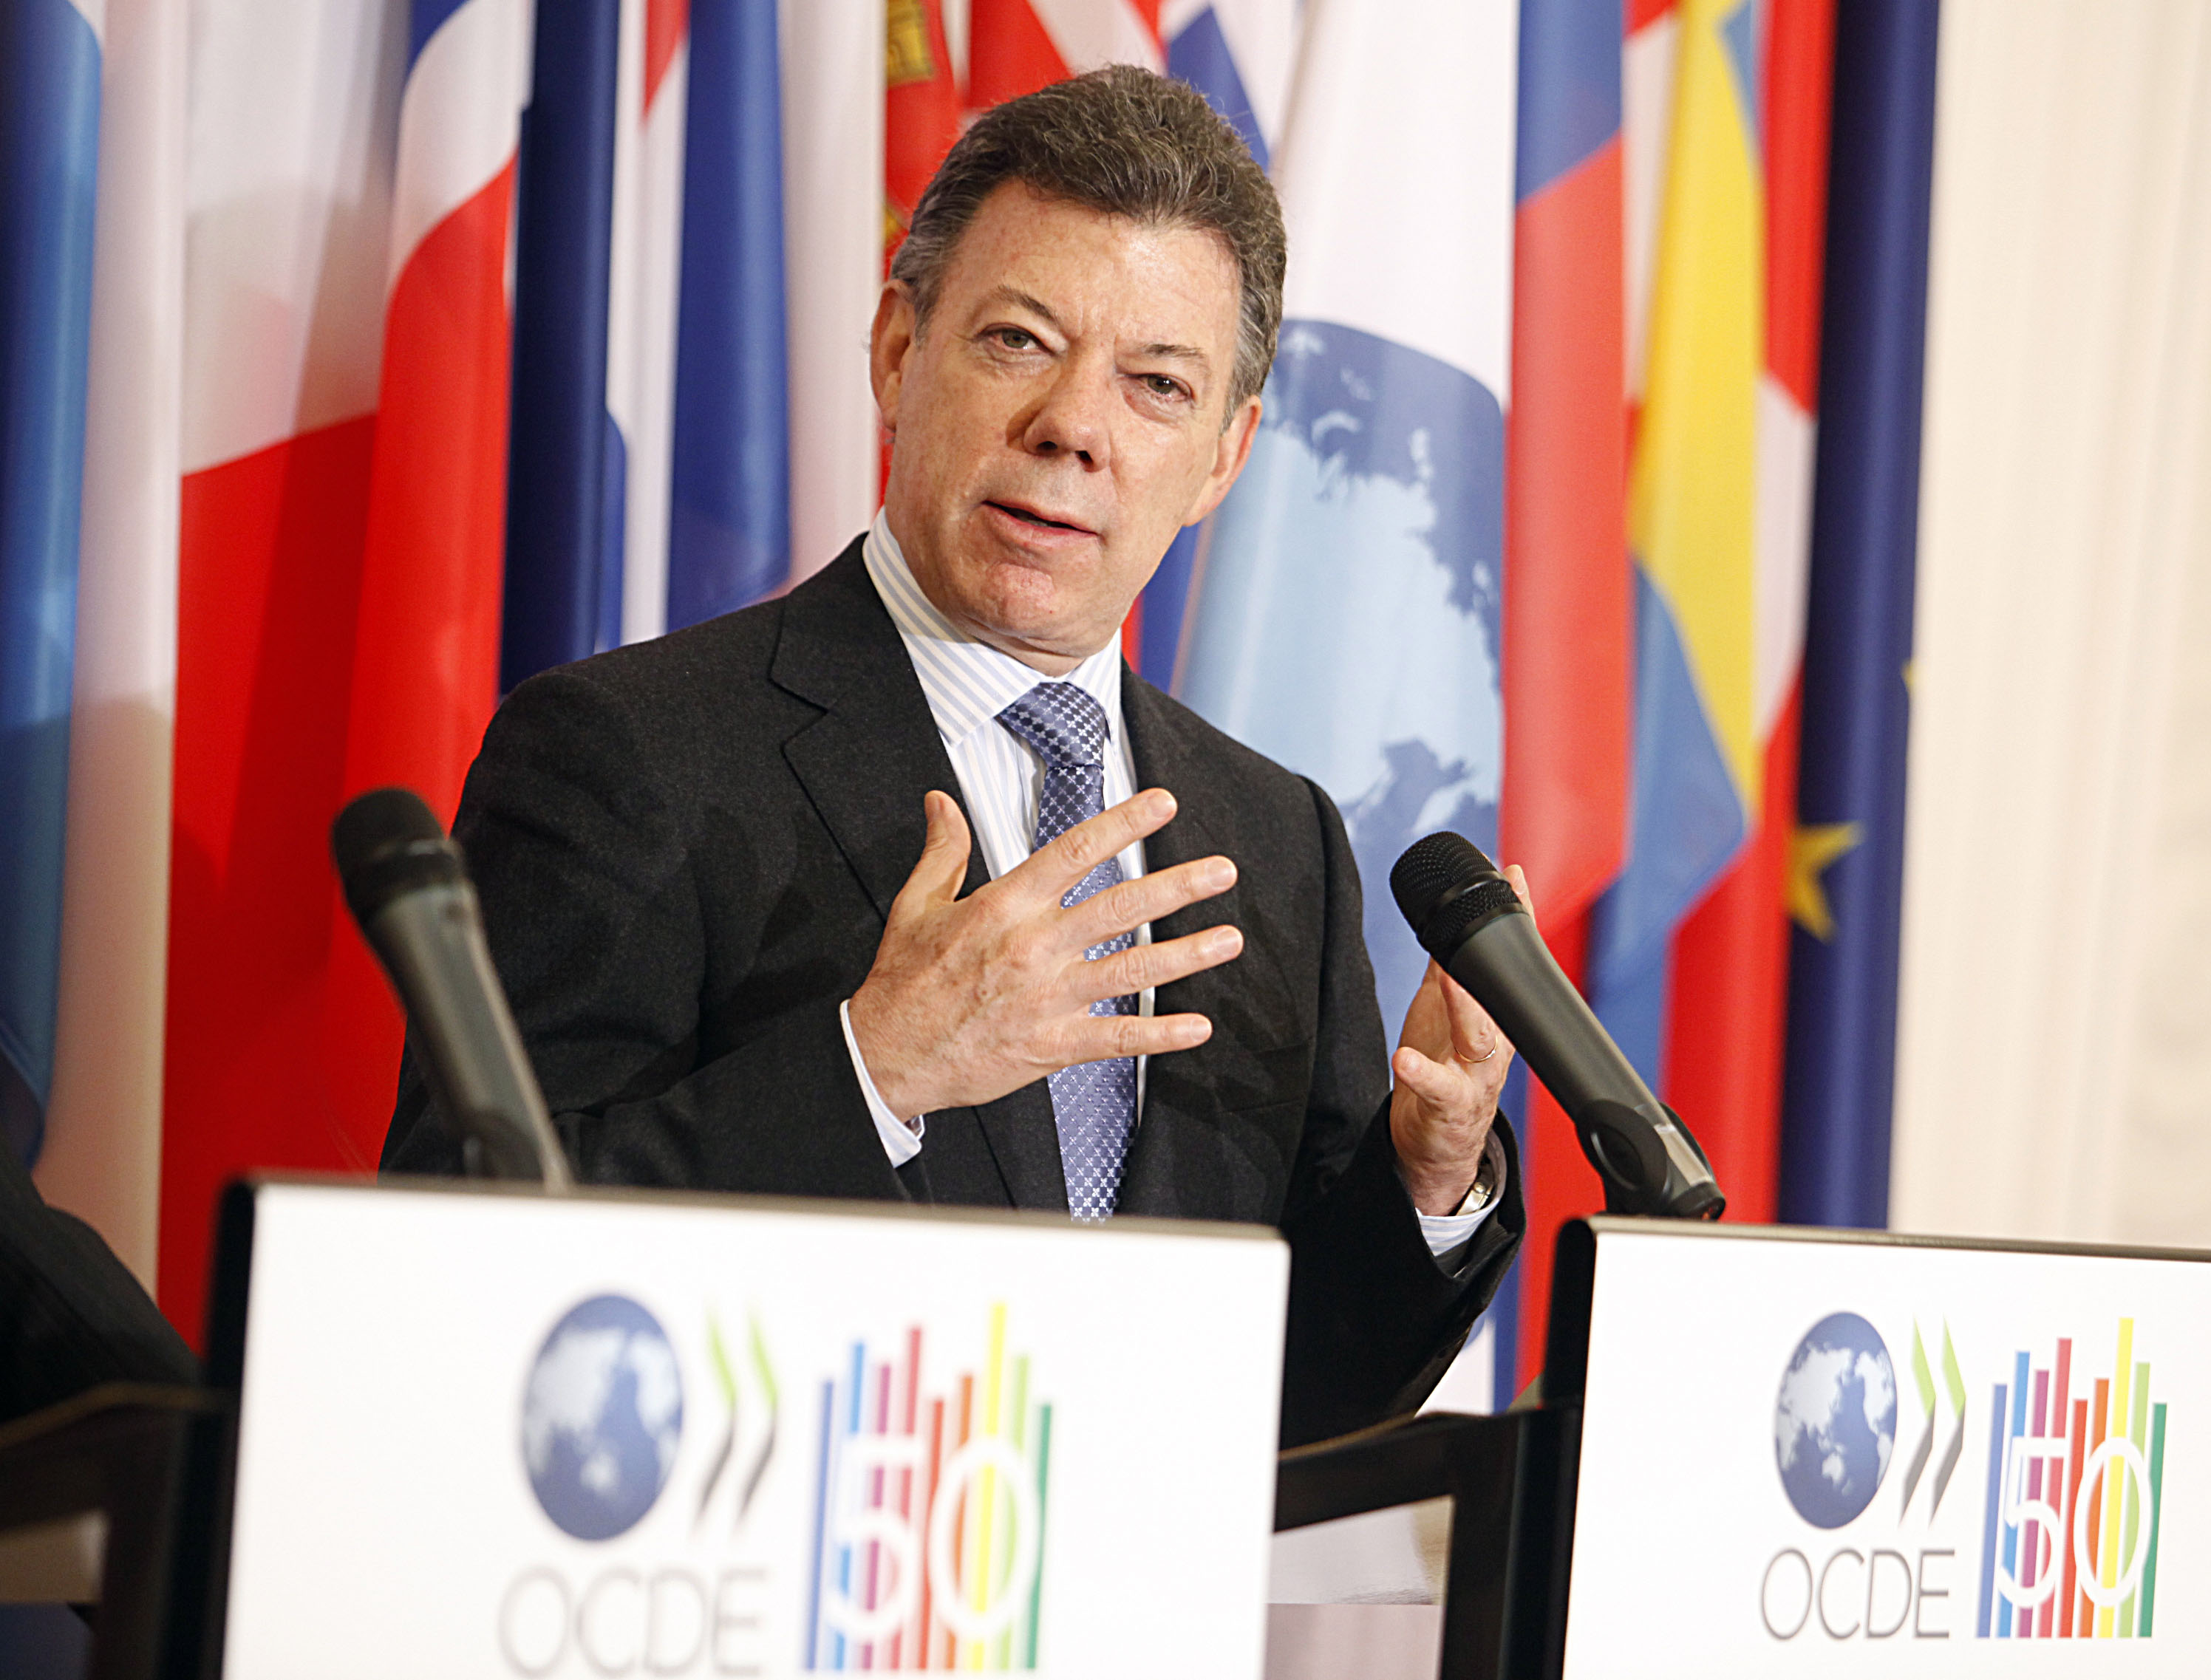 Shocking: President of Colombia wets pants while giving a speech!